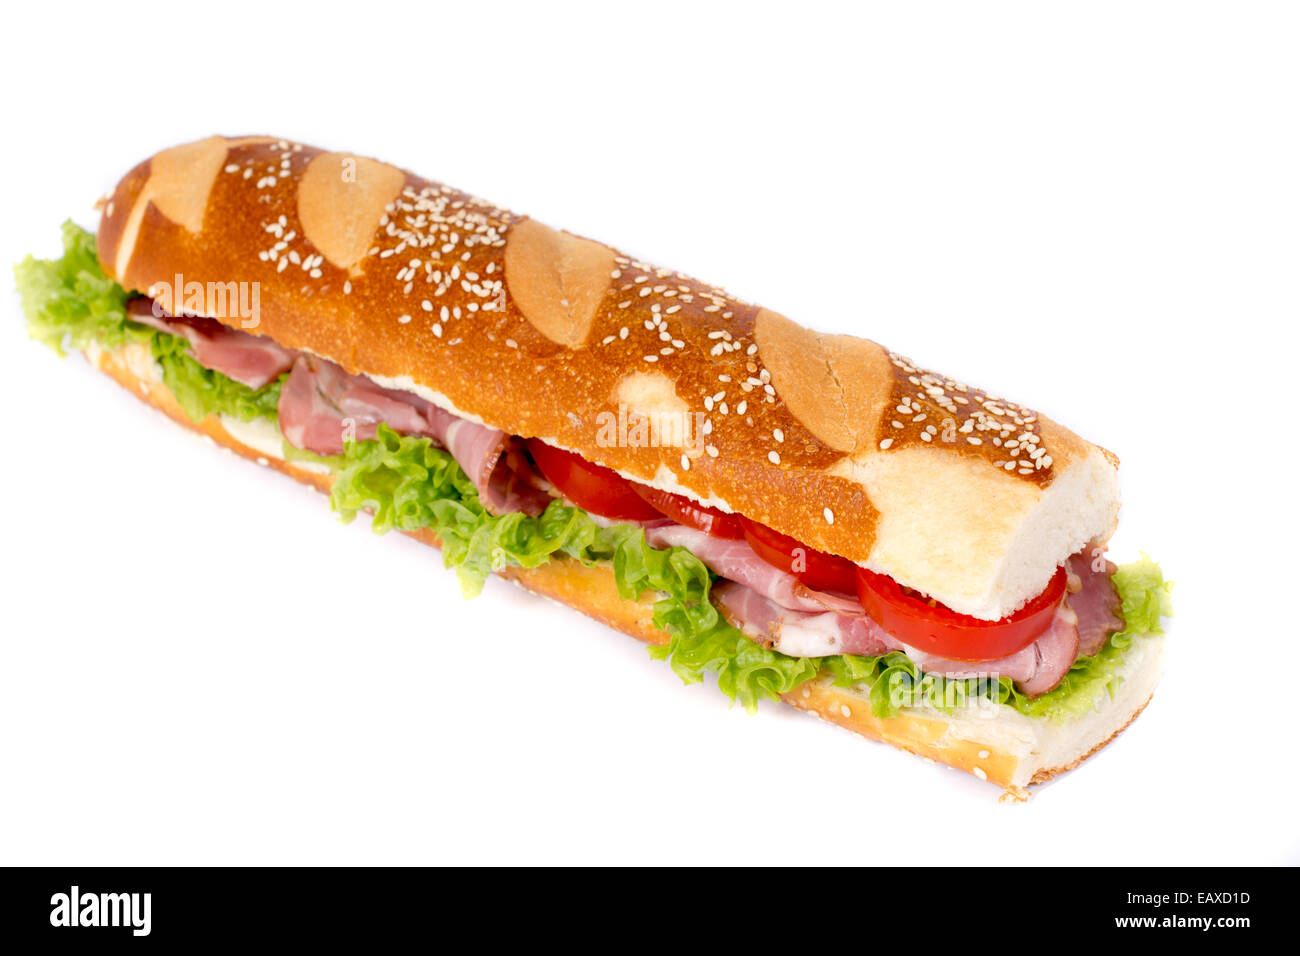 Submarine sandwich with vegetables and prosciutto isolated on white - Stock Image